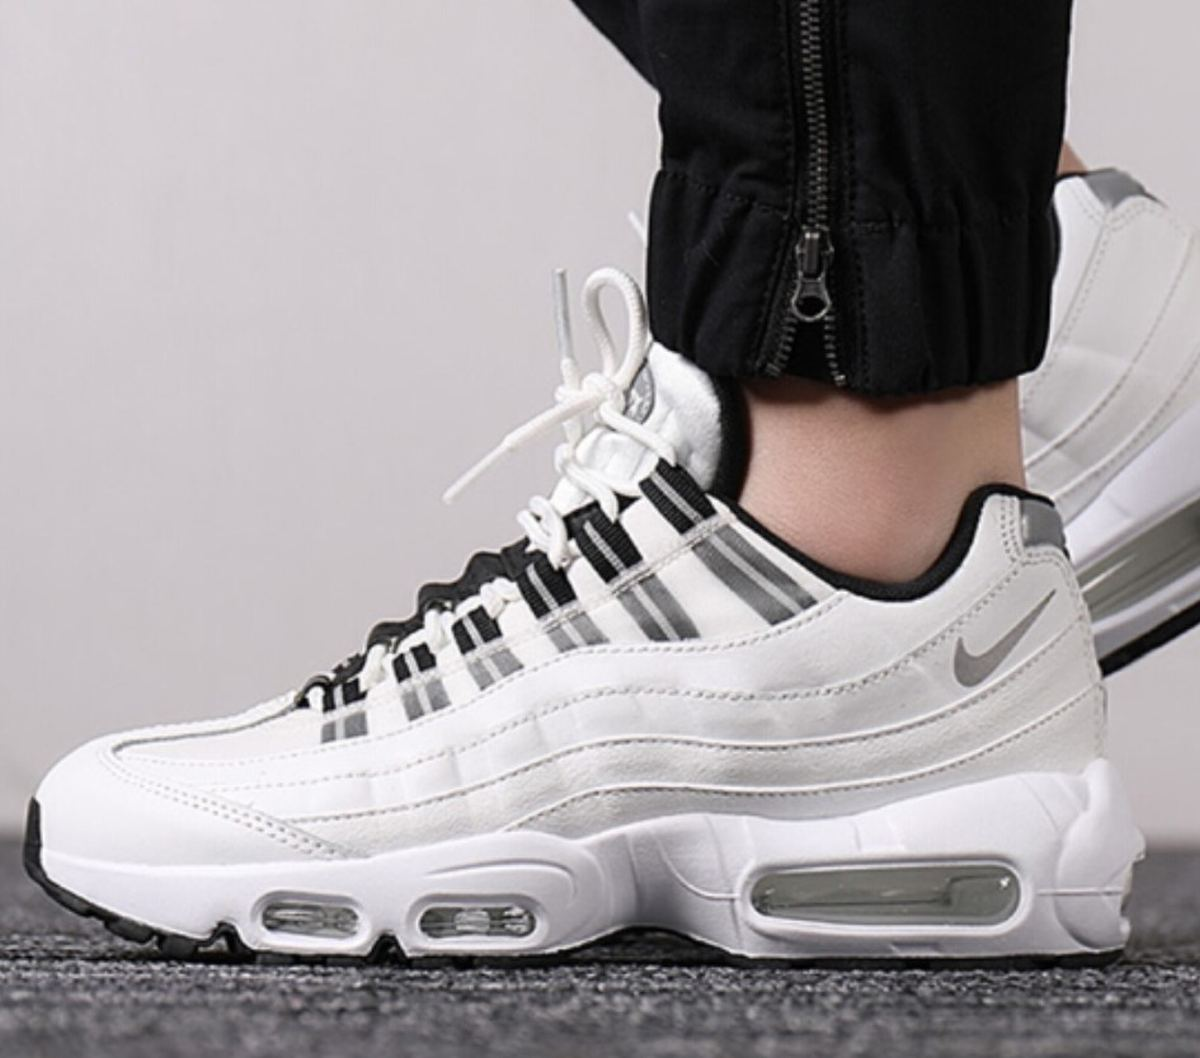 Nike Air Max 95 Dames Wit 307960 113 22